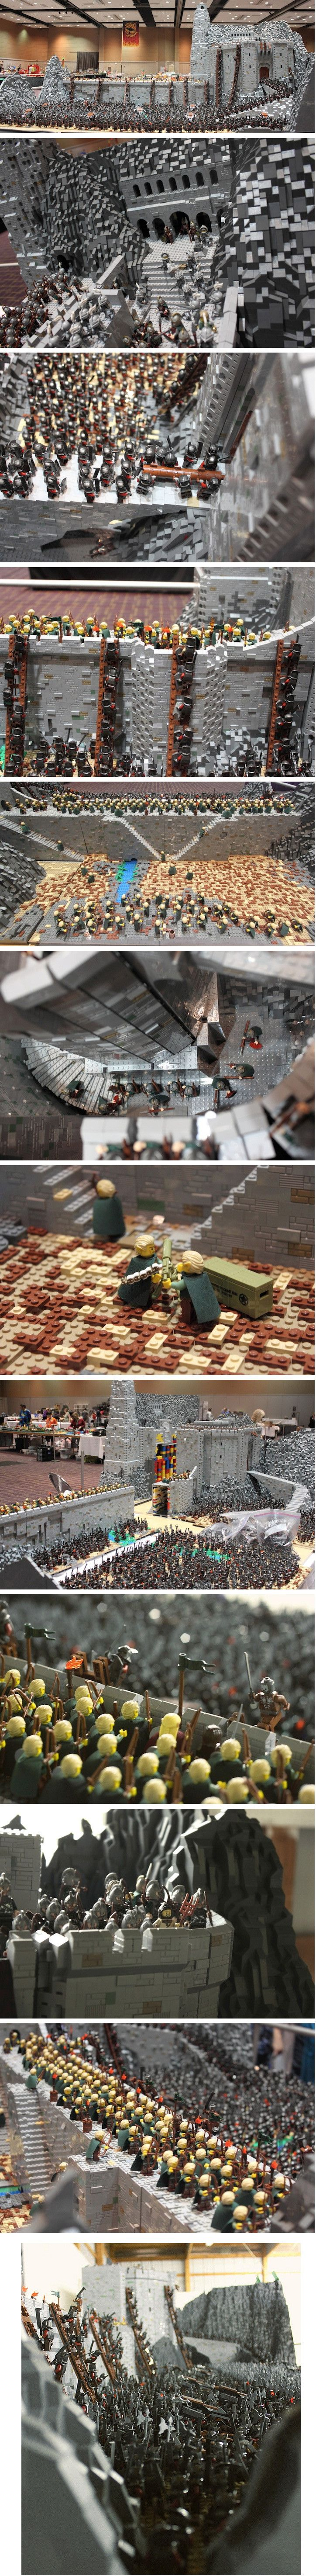 We've all seen some incredible LEGO builds before, but this one, by Rich-K & Big J, takes the cake as one of the most impressive pop culture recreations of all time! About 150,000 LEGO bricks and 1,700 mini-figures were used to recreate the Helm's Deep battle scene from Peter Jackson's The Lord of the Rings. It took the duo about four months to construct the 160 pound, ping-pong table size creation.